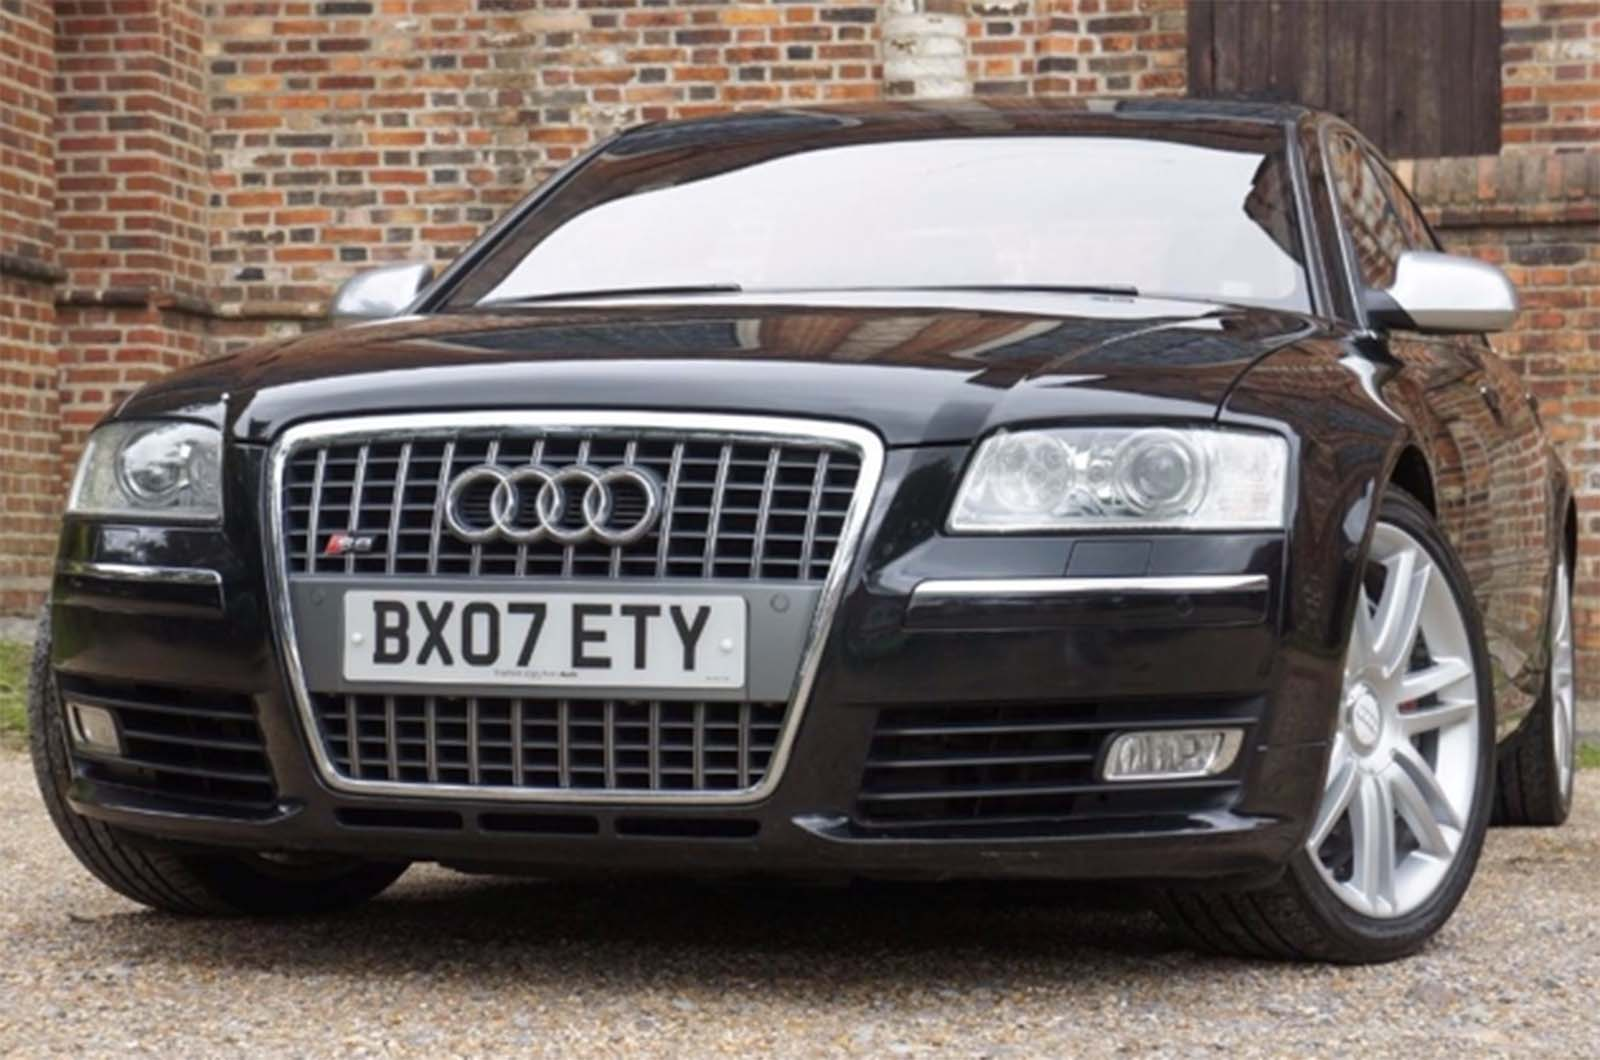 Audi S Used Car Buying Guide Autocar - 2007 audi s8